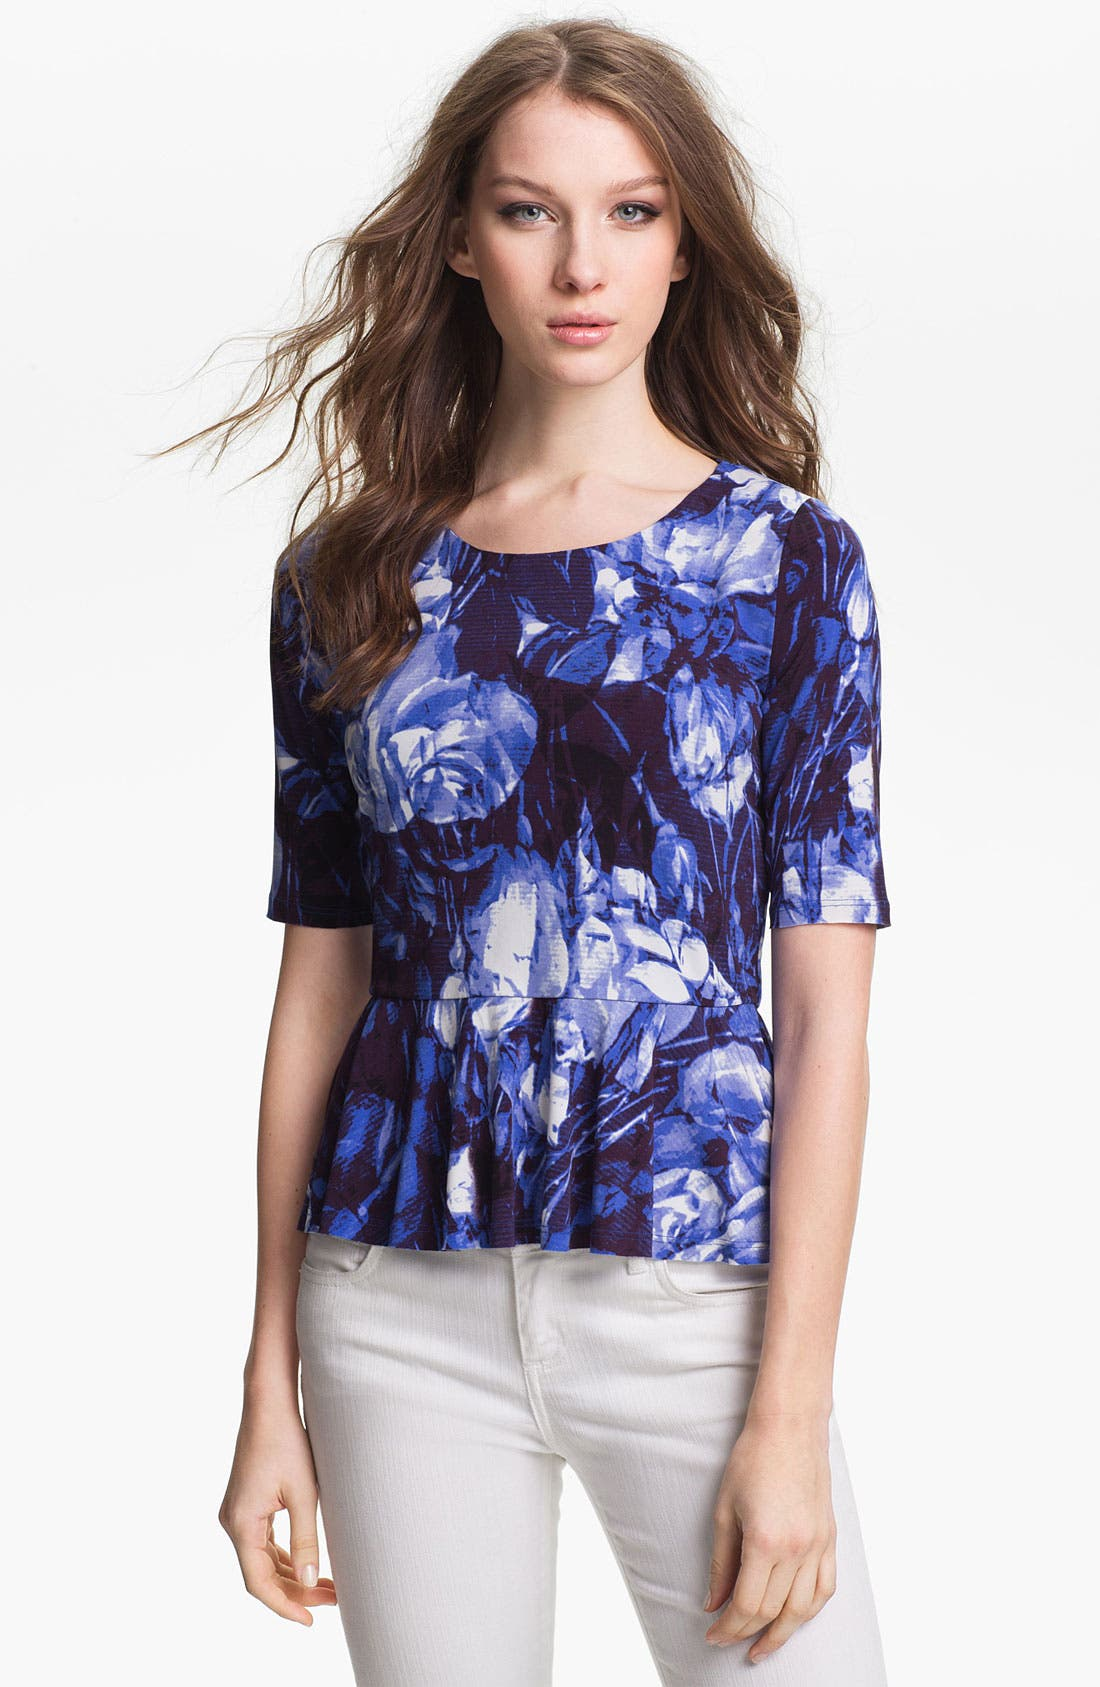 Alternate Image 1 Selected - Vince Camuto Floral Print Peplum Top